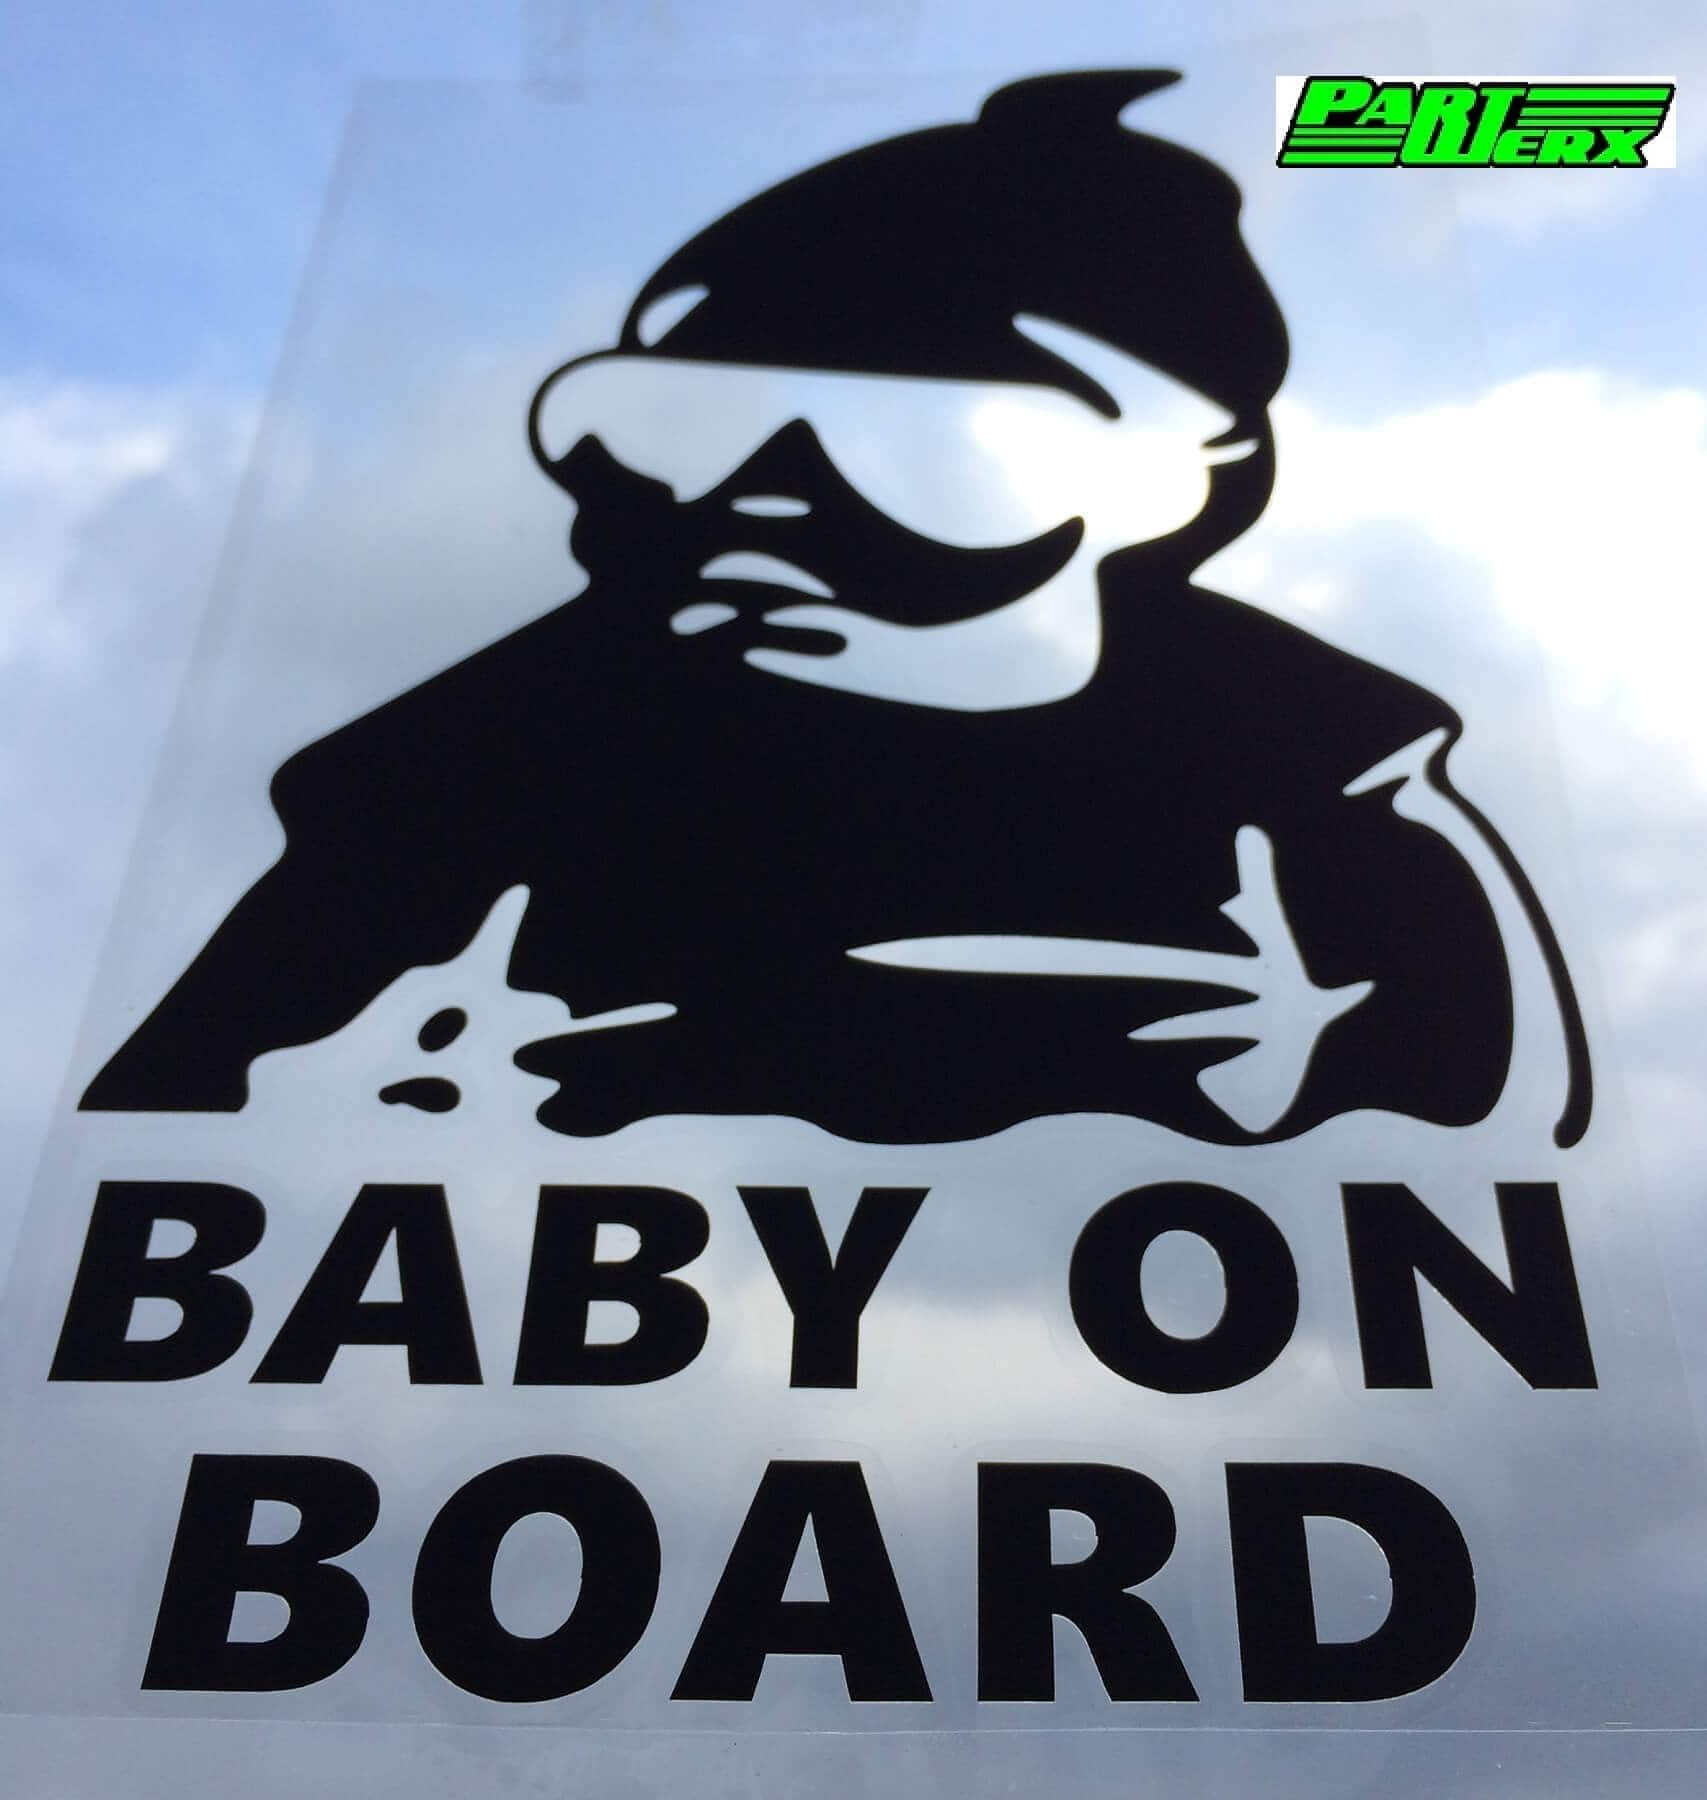 Baby On Board Sticker Large Bumper Sign For BMW Mazda Toyota MG Renault Volvo Owners